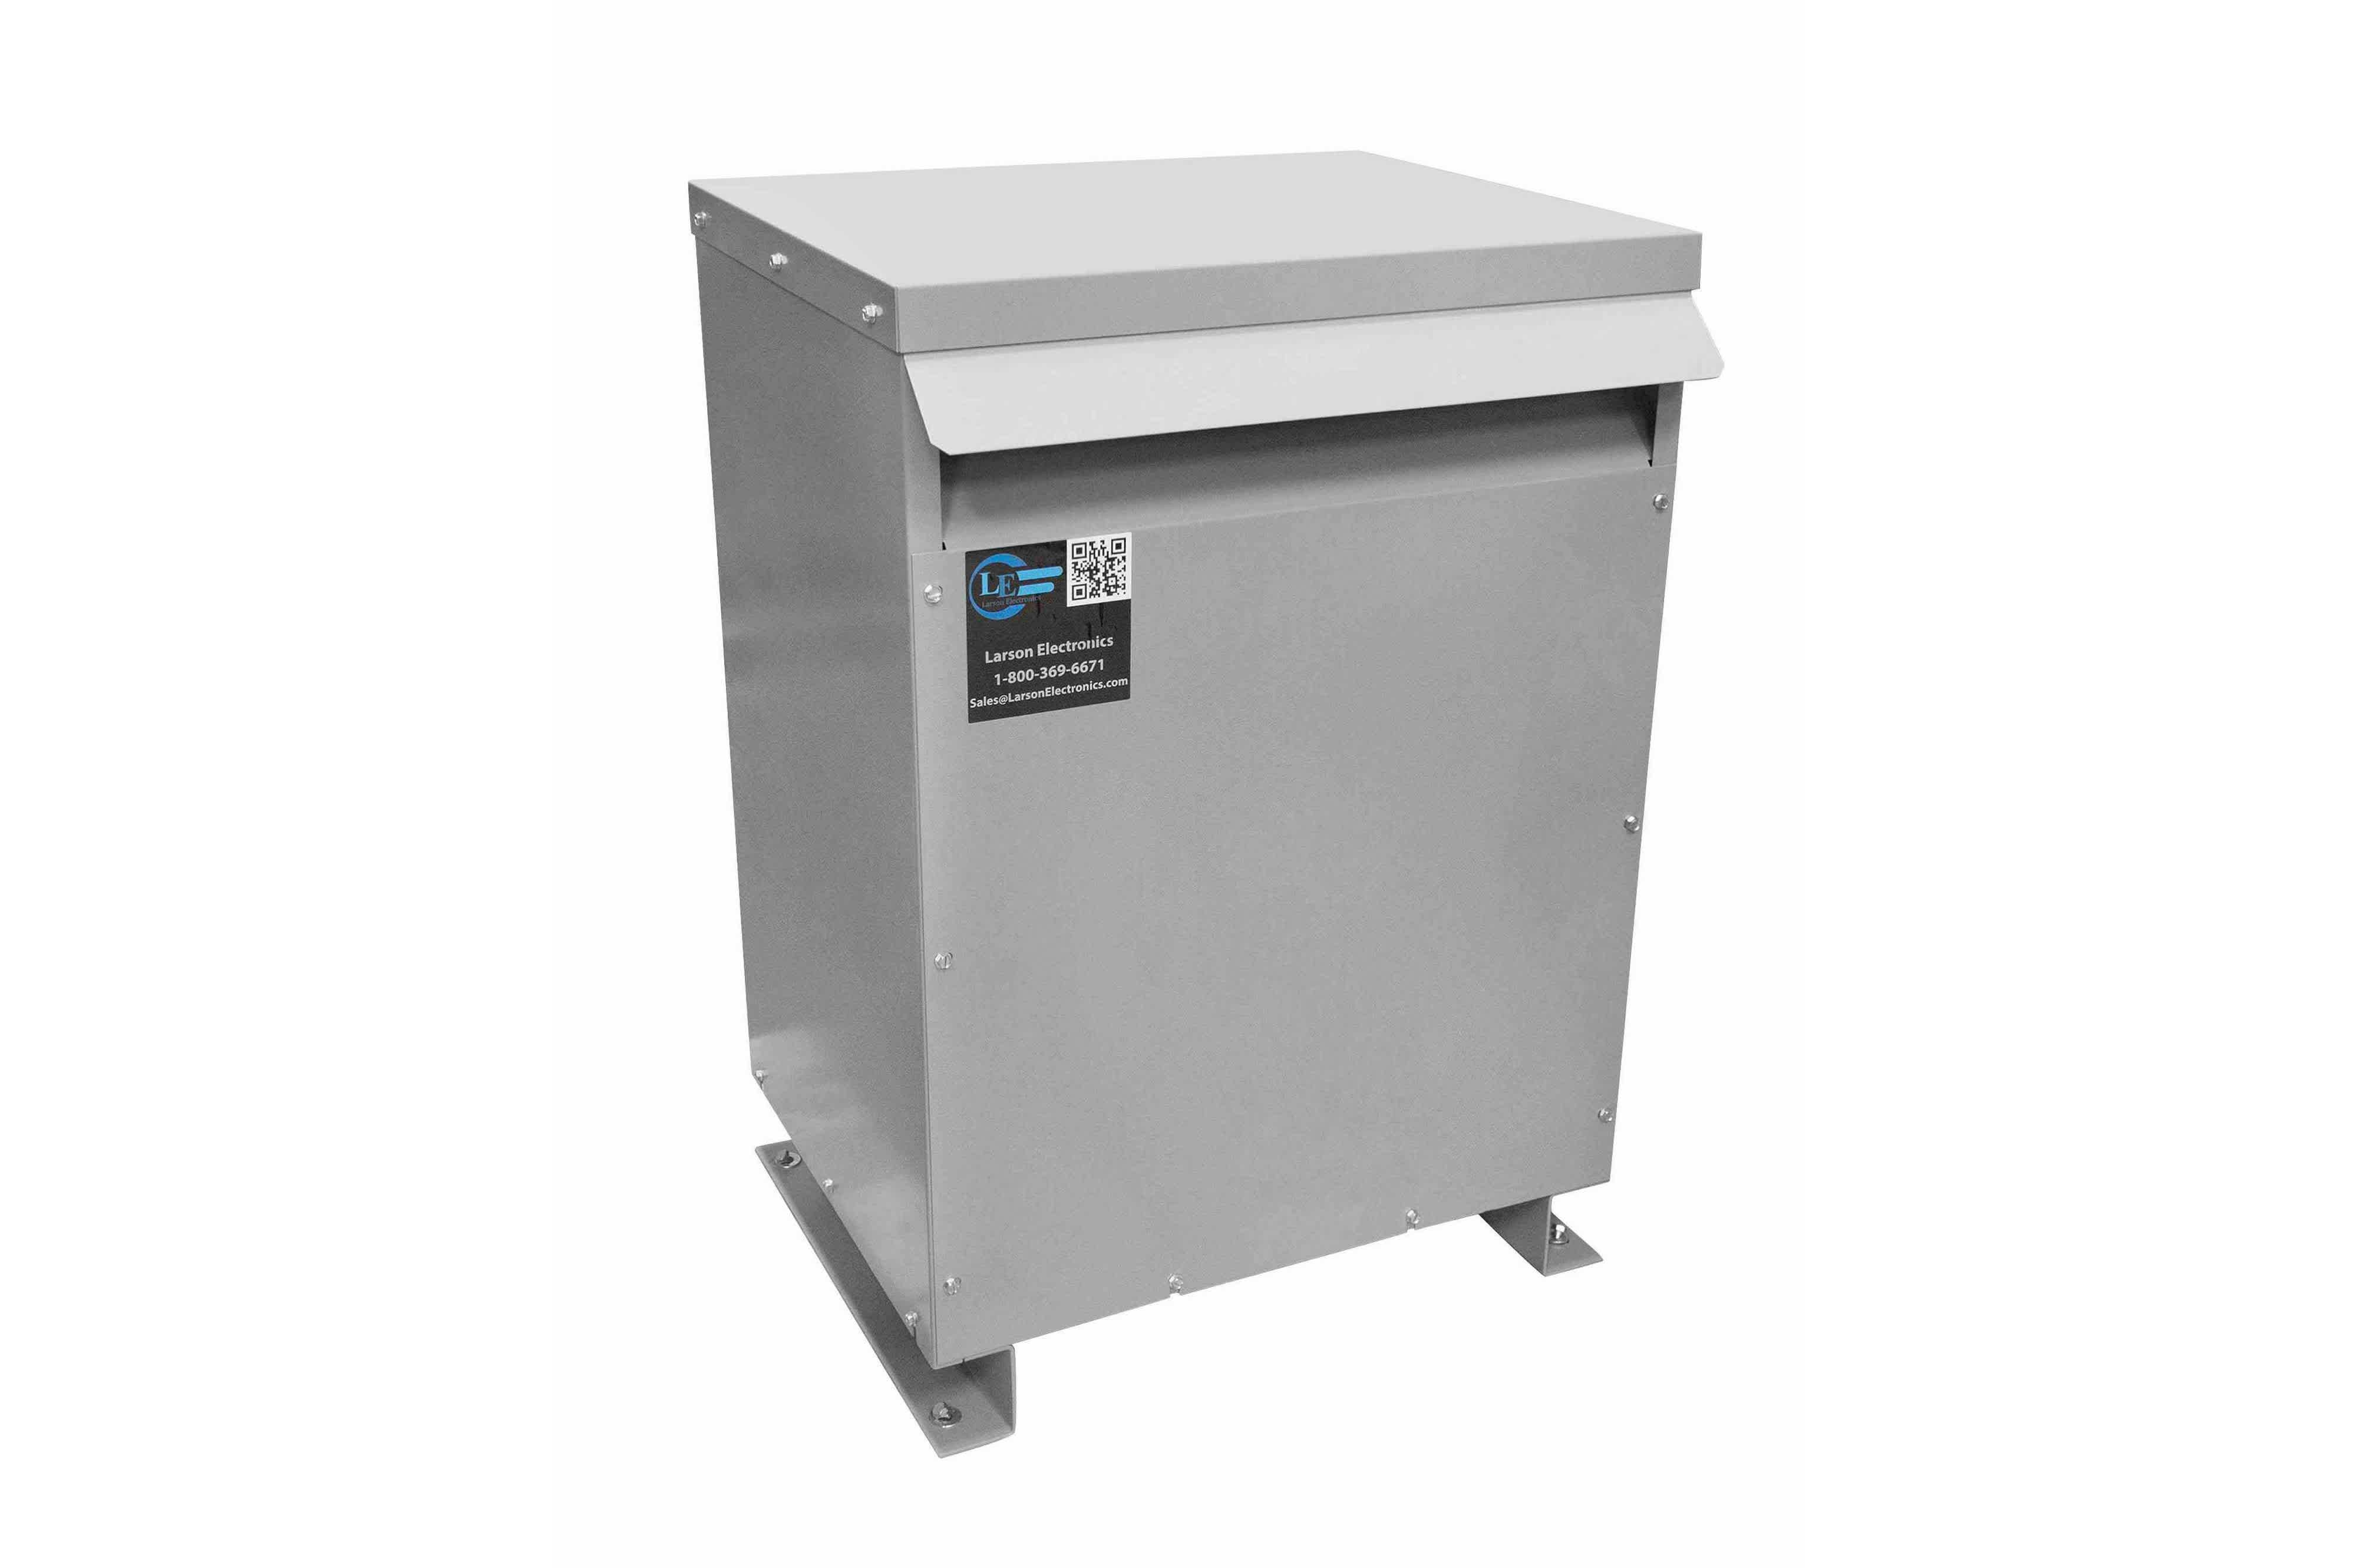 25 kVA 3PH Isolation Transformer, 460V Delta Primary, 600V Delta Secondary, N3R, Ventilated, 60 Hz